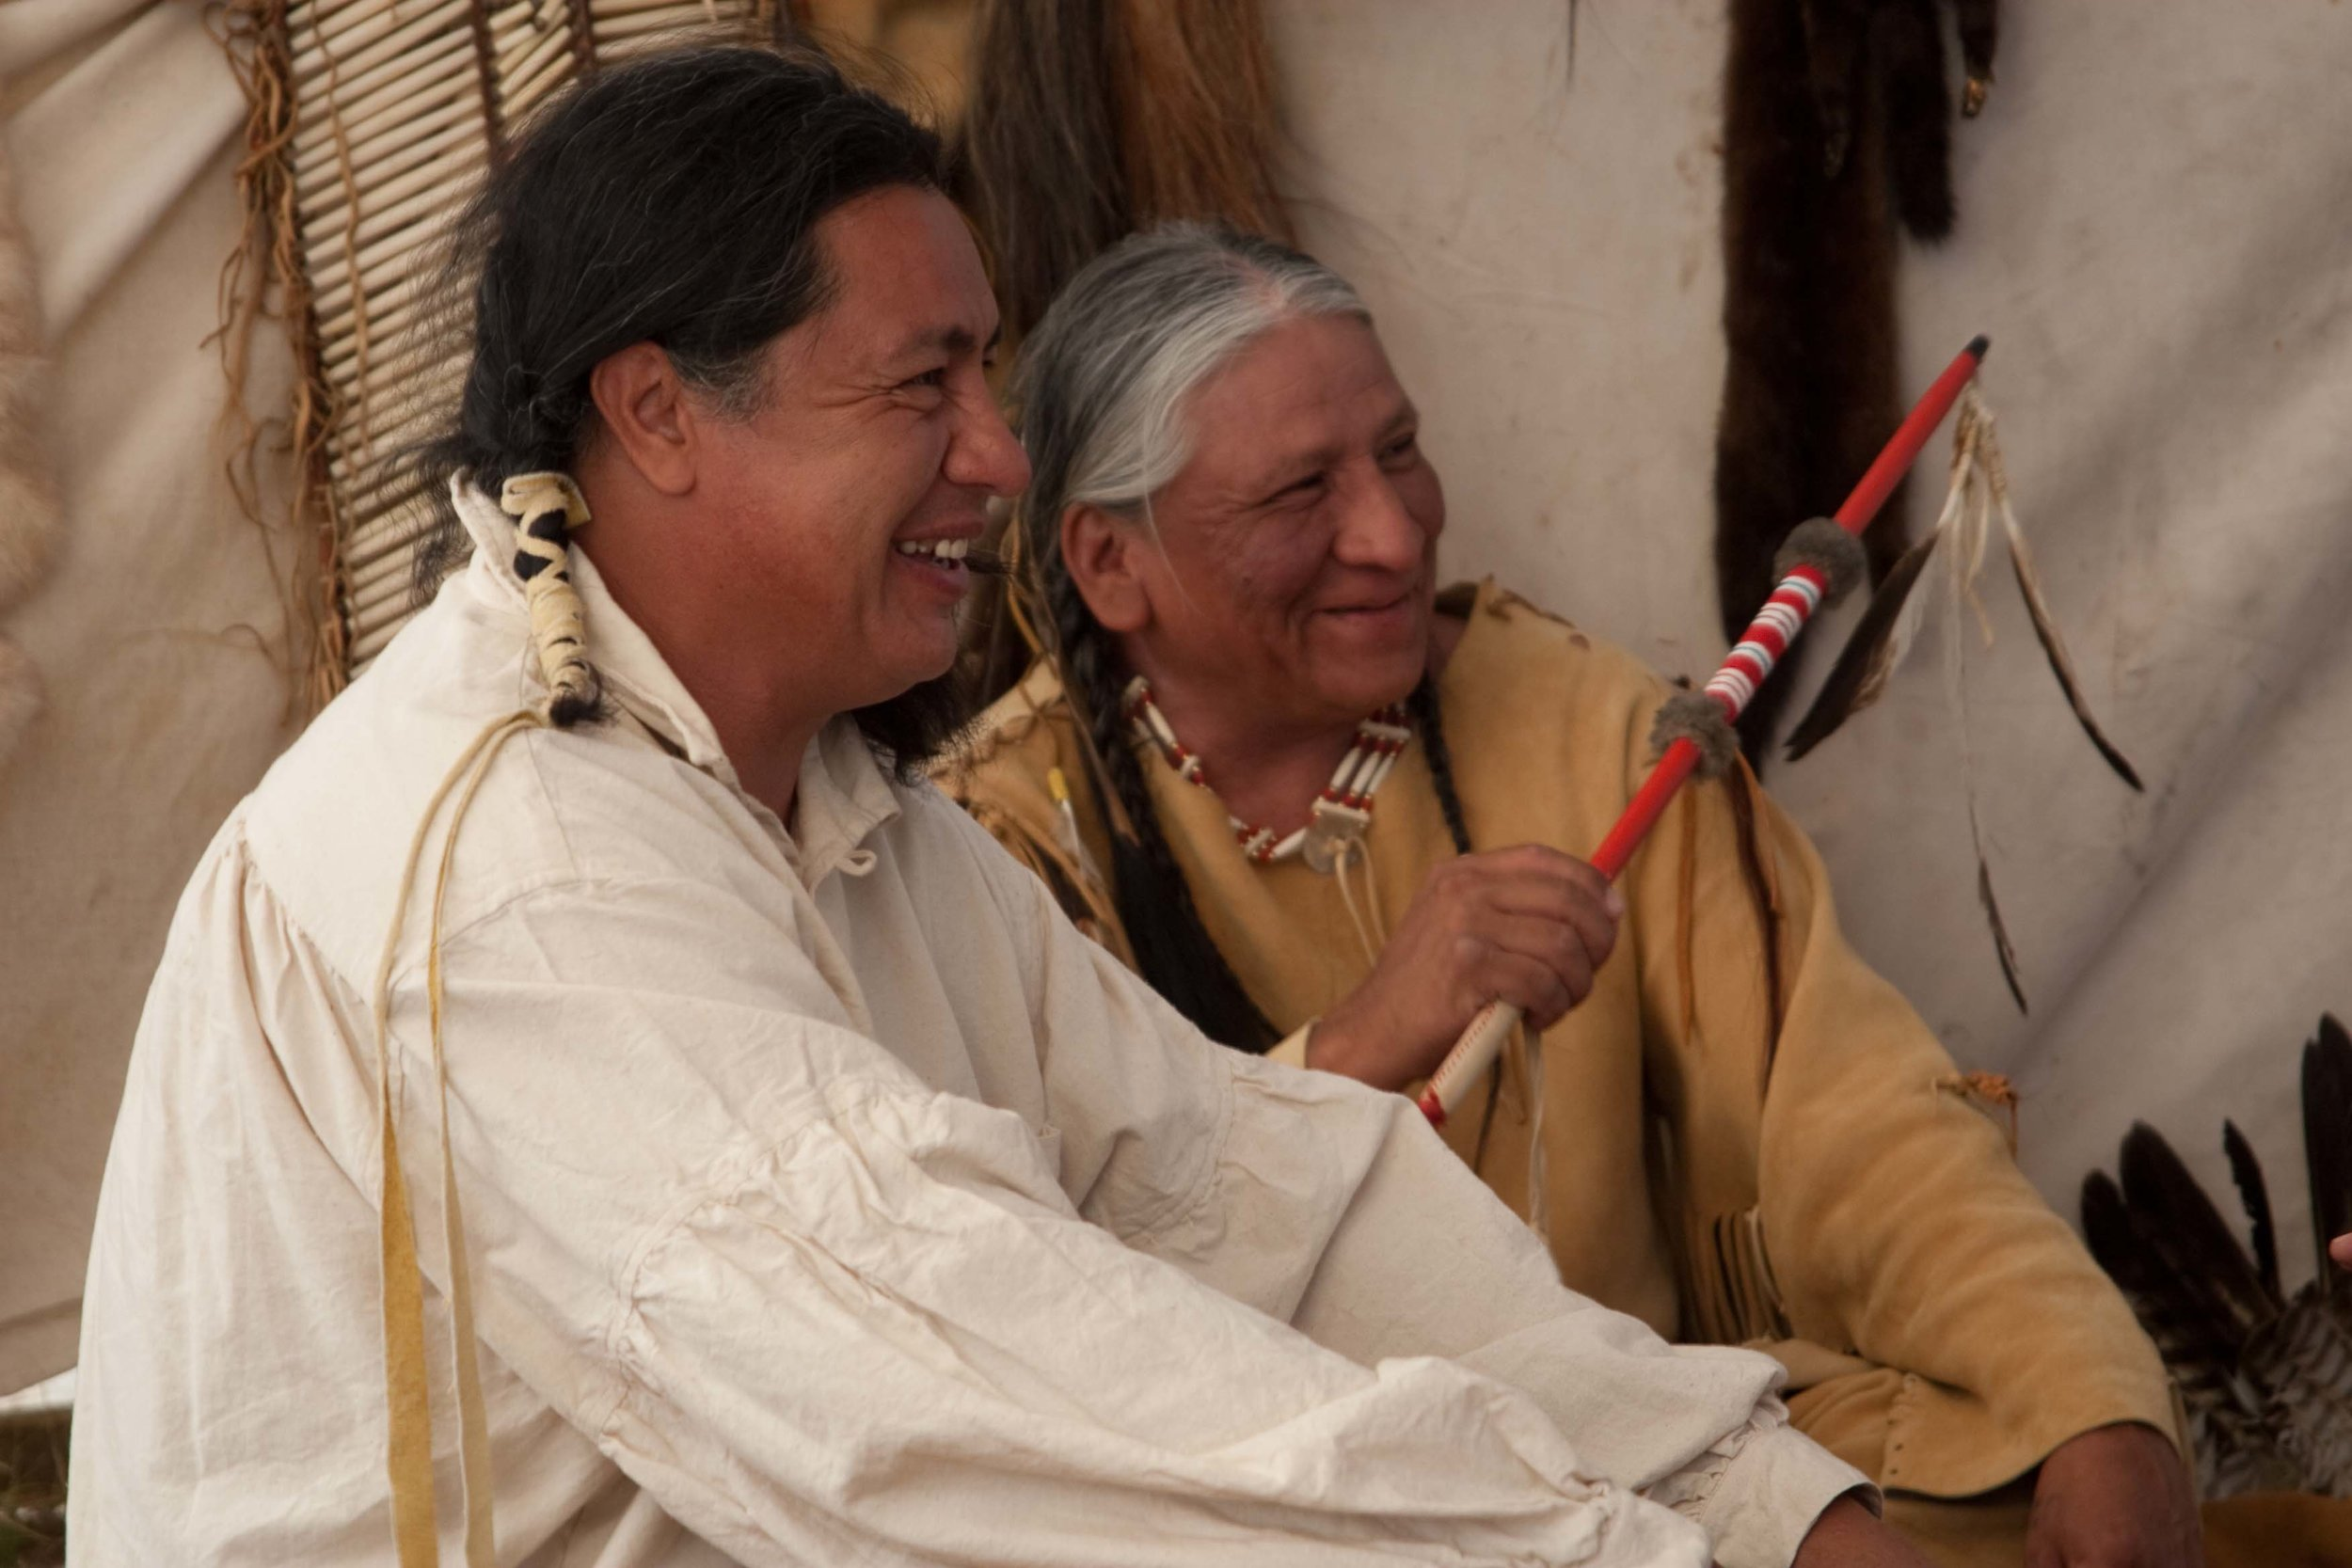 larry-swalley-minor-running-cloud-corbin-conroy-little-thunder-relaxing-and-sharing-a-laugh-between-takes-in-the-teepee-scene.jpg